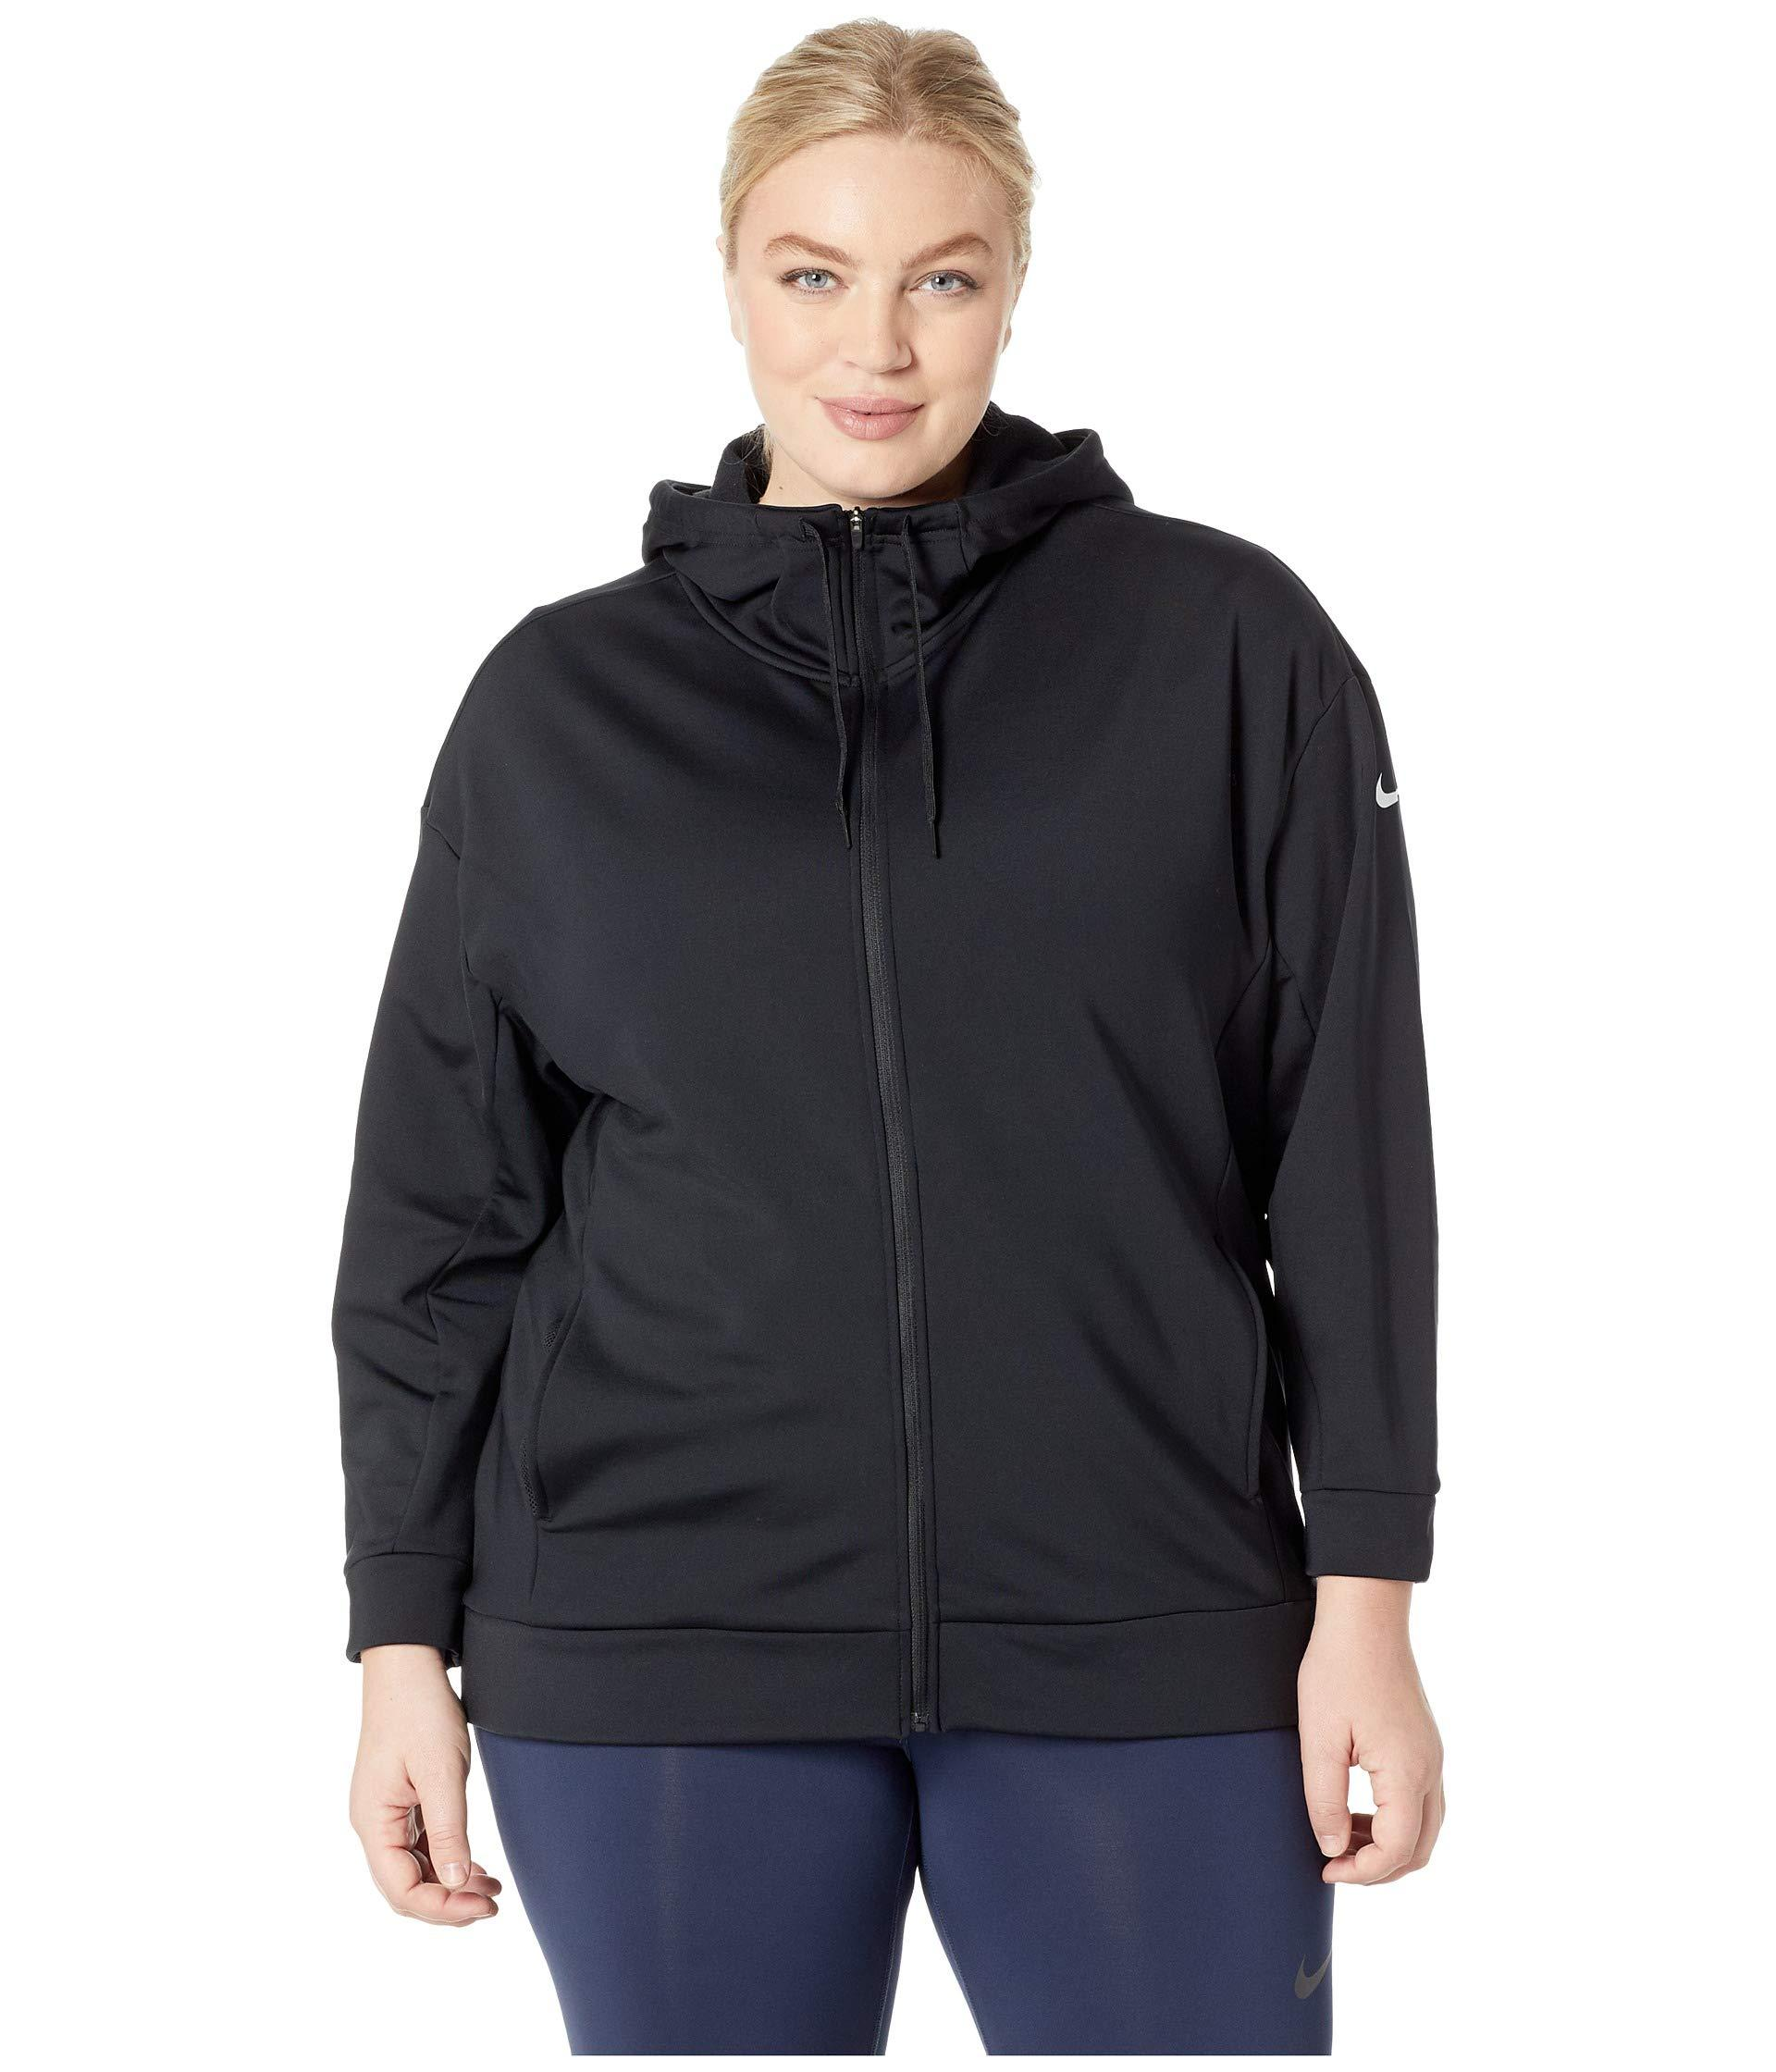 85f428d9e2493 Lyst - Nike Therma All Time Full Zip Hoodie (sizes 1x-3x) in Black ...